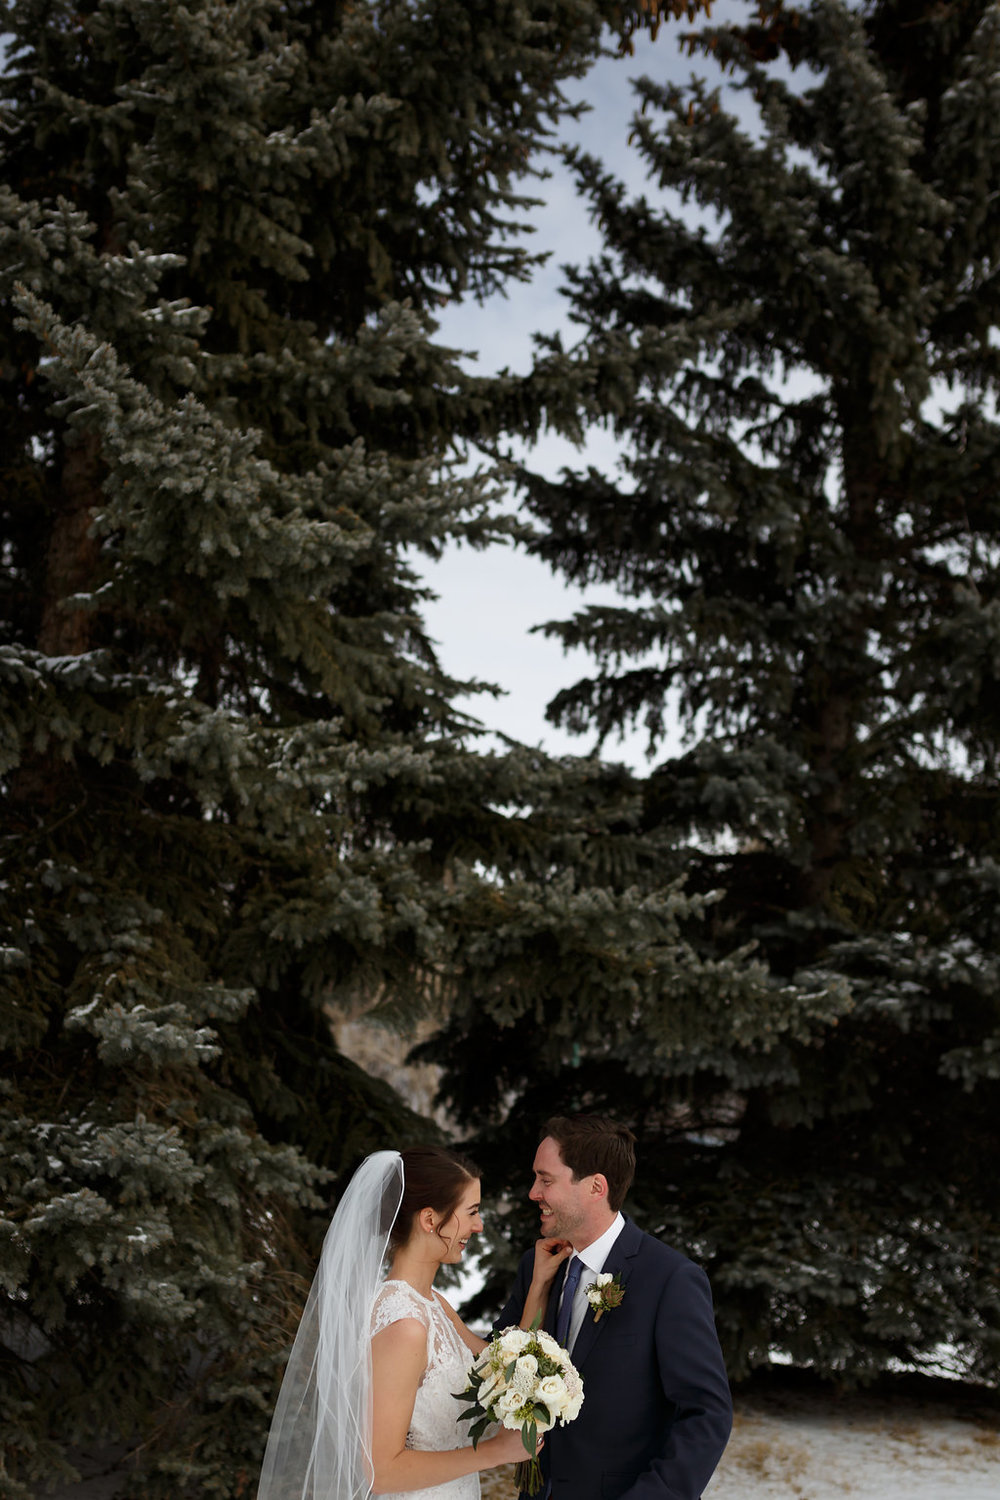 K+KPhotography_D+BWedding-172.jpg